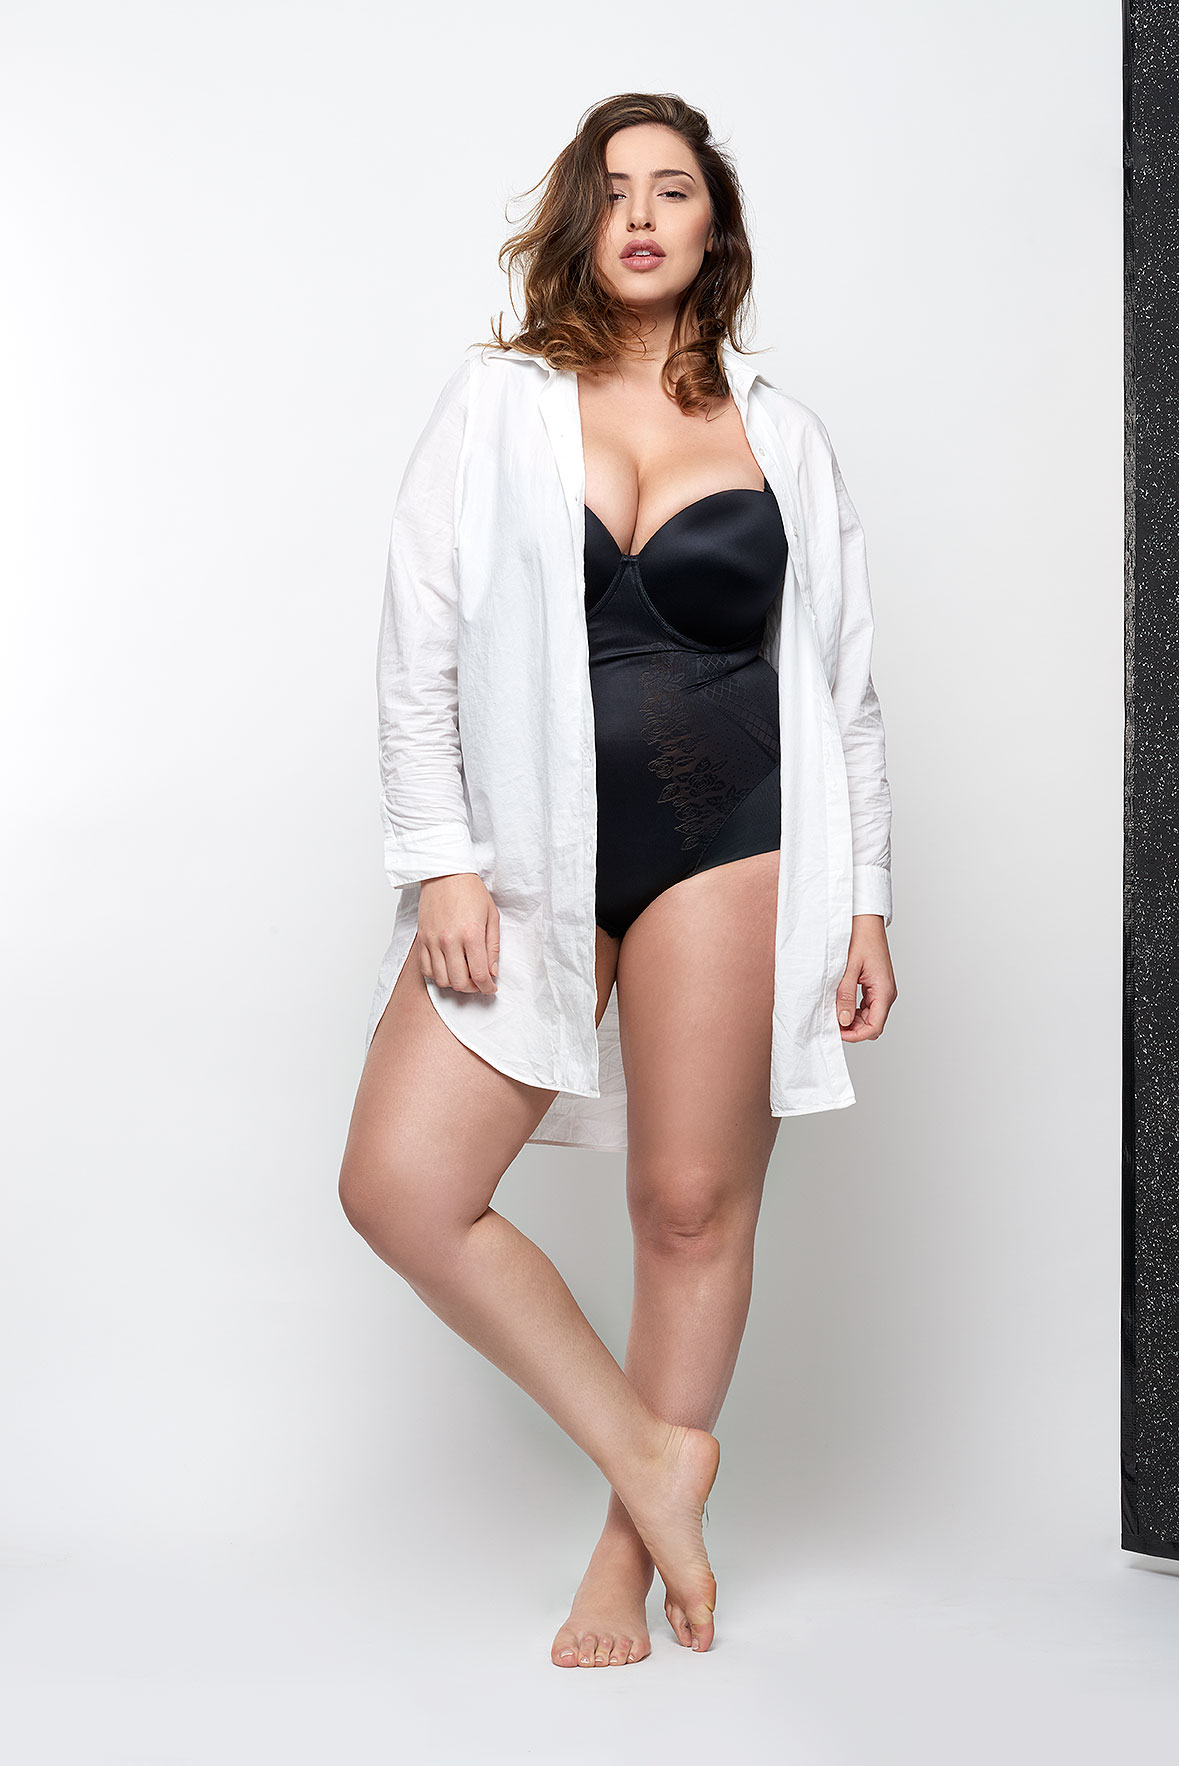 Jada-models-one-1-la-vie-en-lingerie-lingerie-la-femme-plus-size-model-black-bodysuit-white-shirt-04